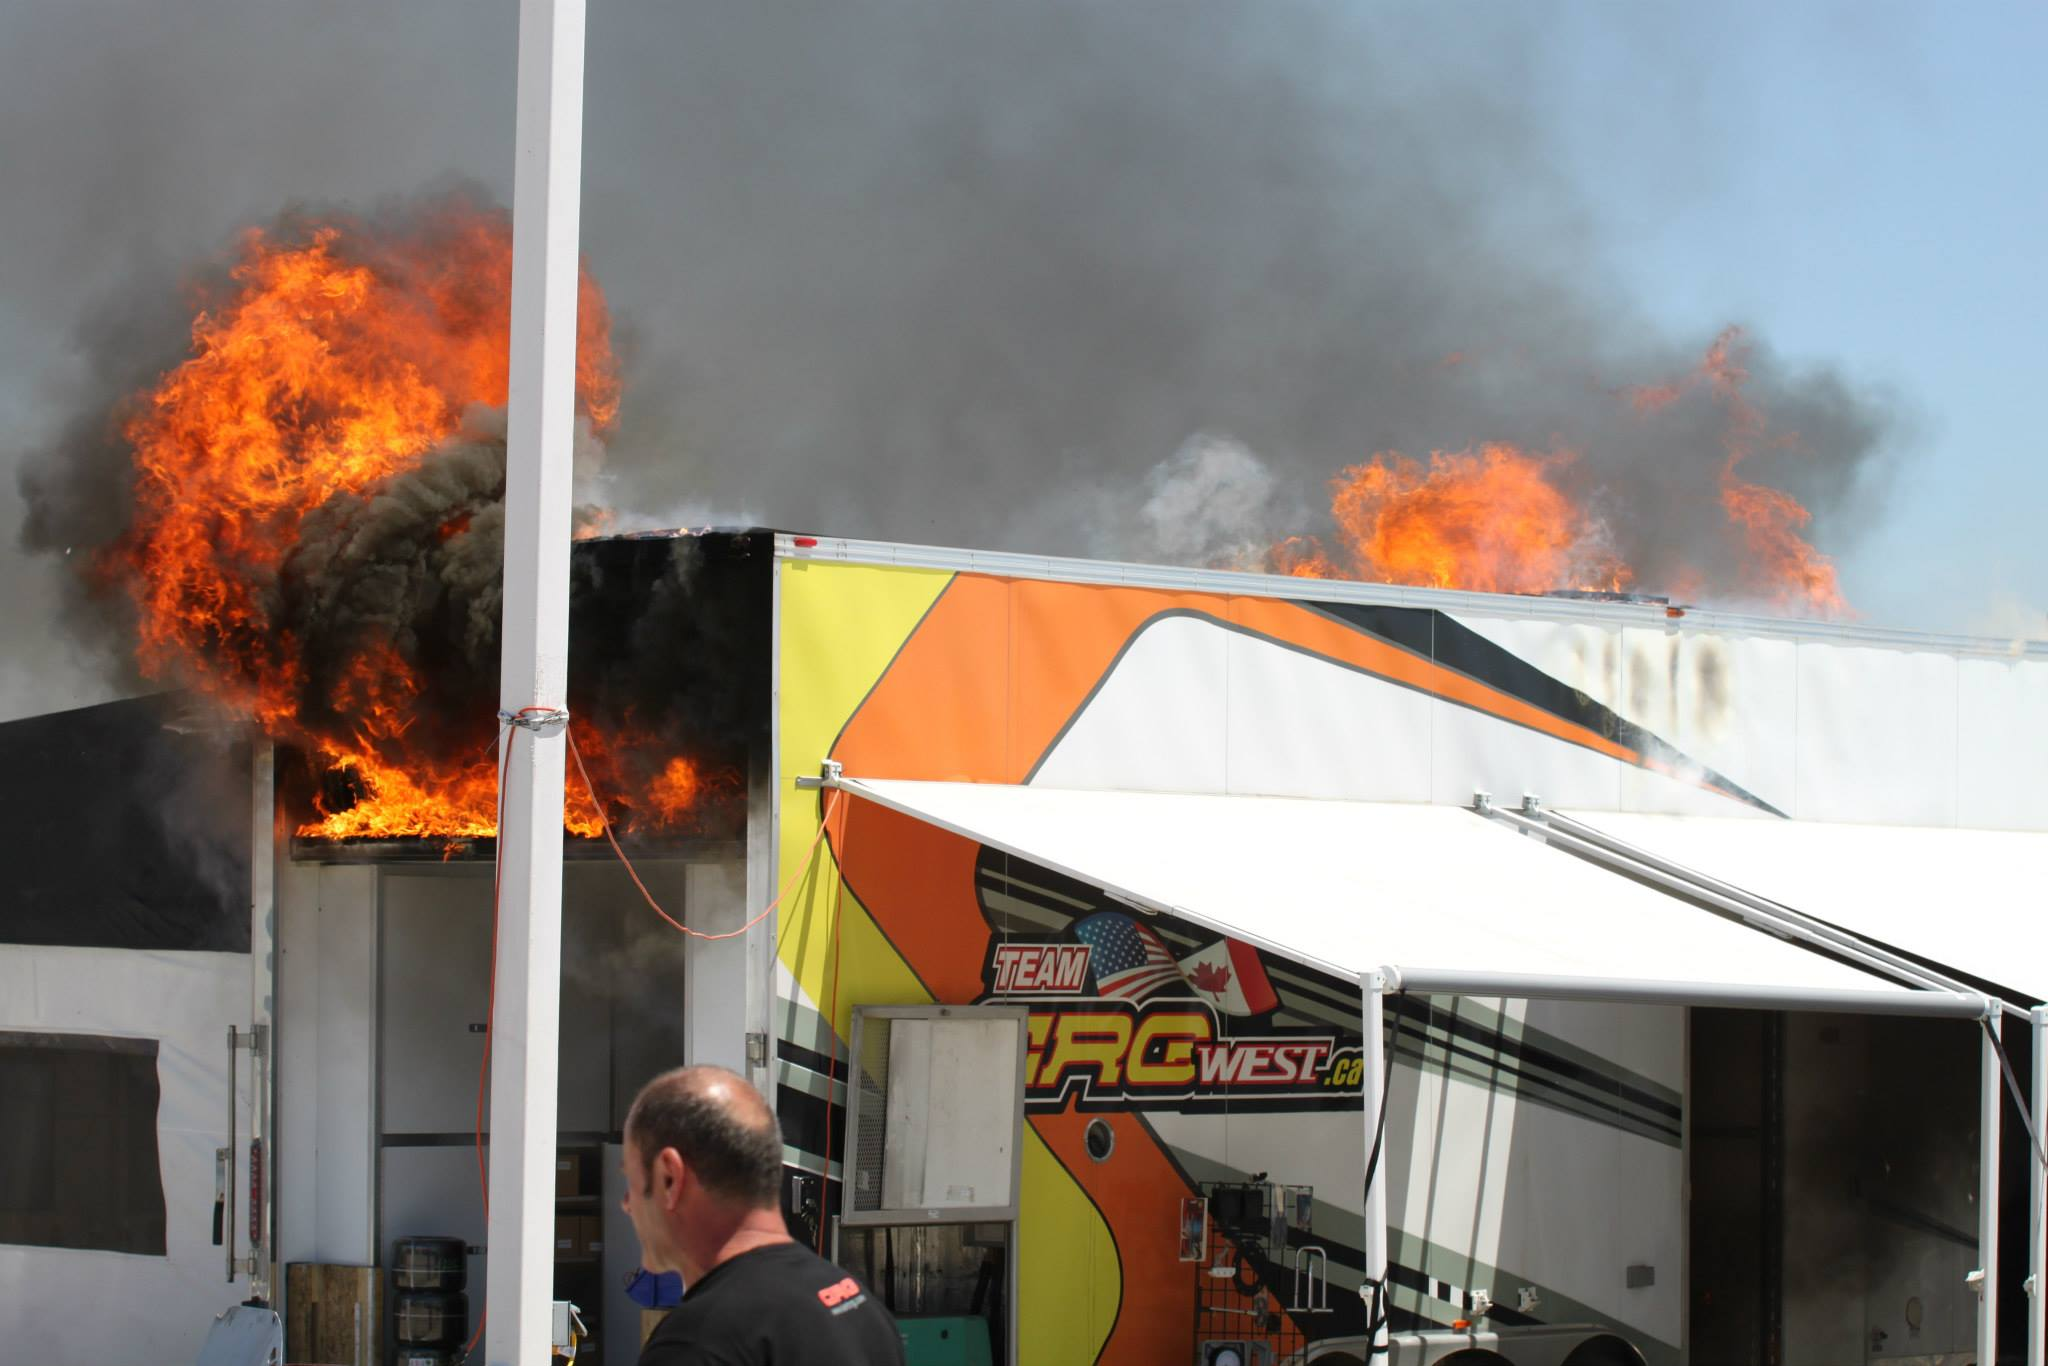 crg west loses team trailer in horrific trackside fire in